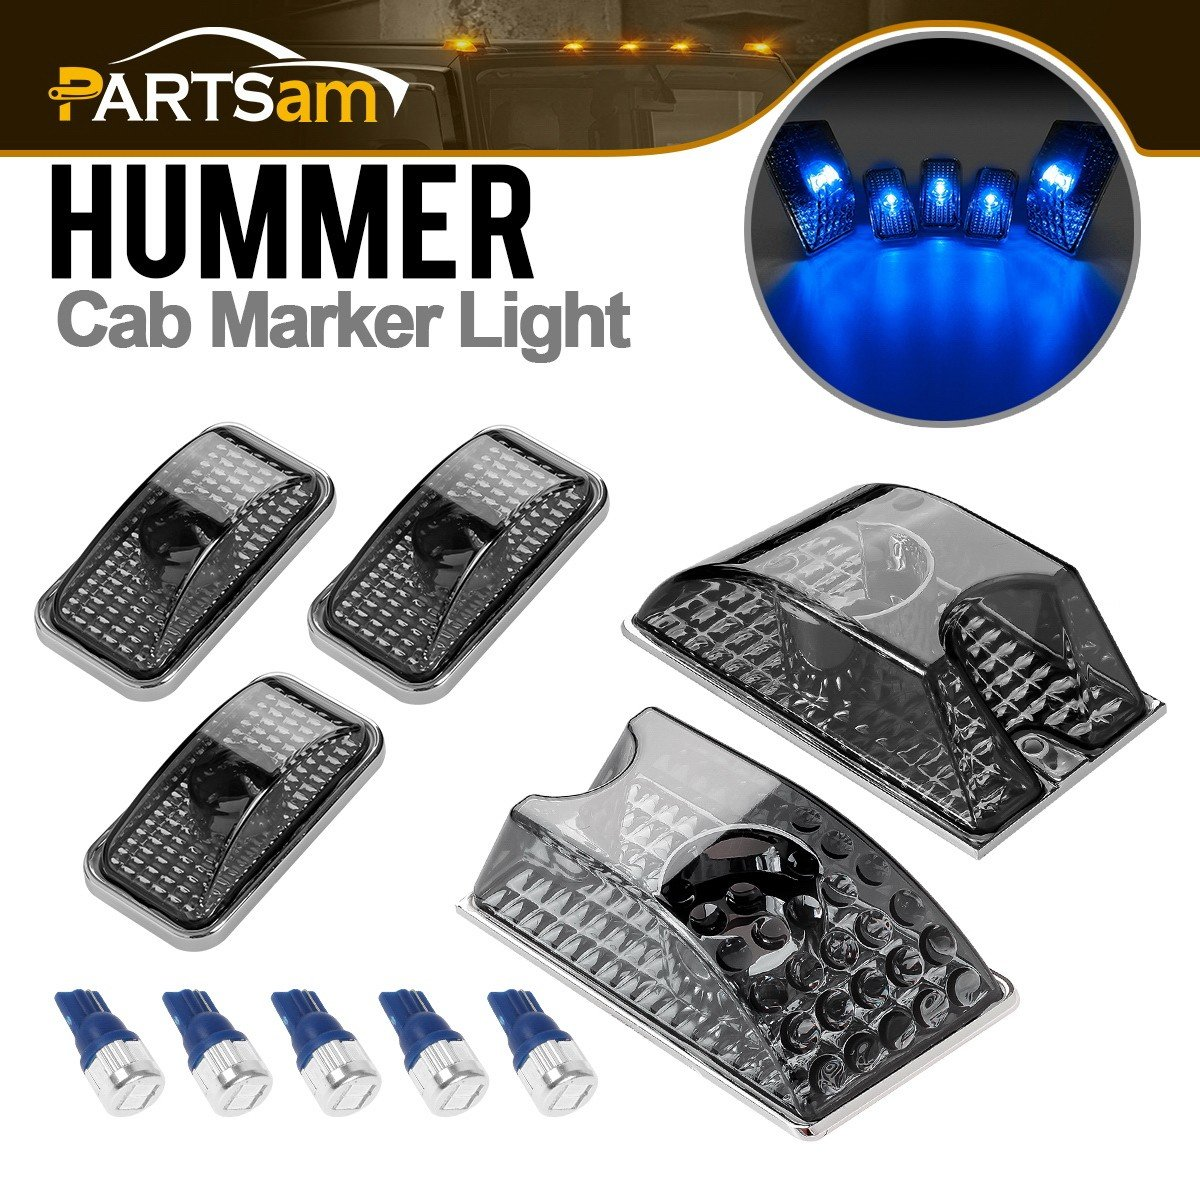 Partsam 5PCS 264160BK Smoke Cover Lens LED Cab Marker Top Roof Clearance Running Lights Crystal Chrome + 5PCS 194 168 W5W Blue T10 LED Bulbs Replacement for 2003-2009 Hummer H2 SUV SUT Waterproof